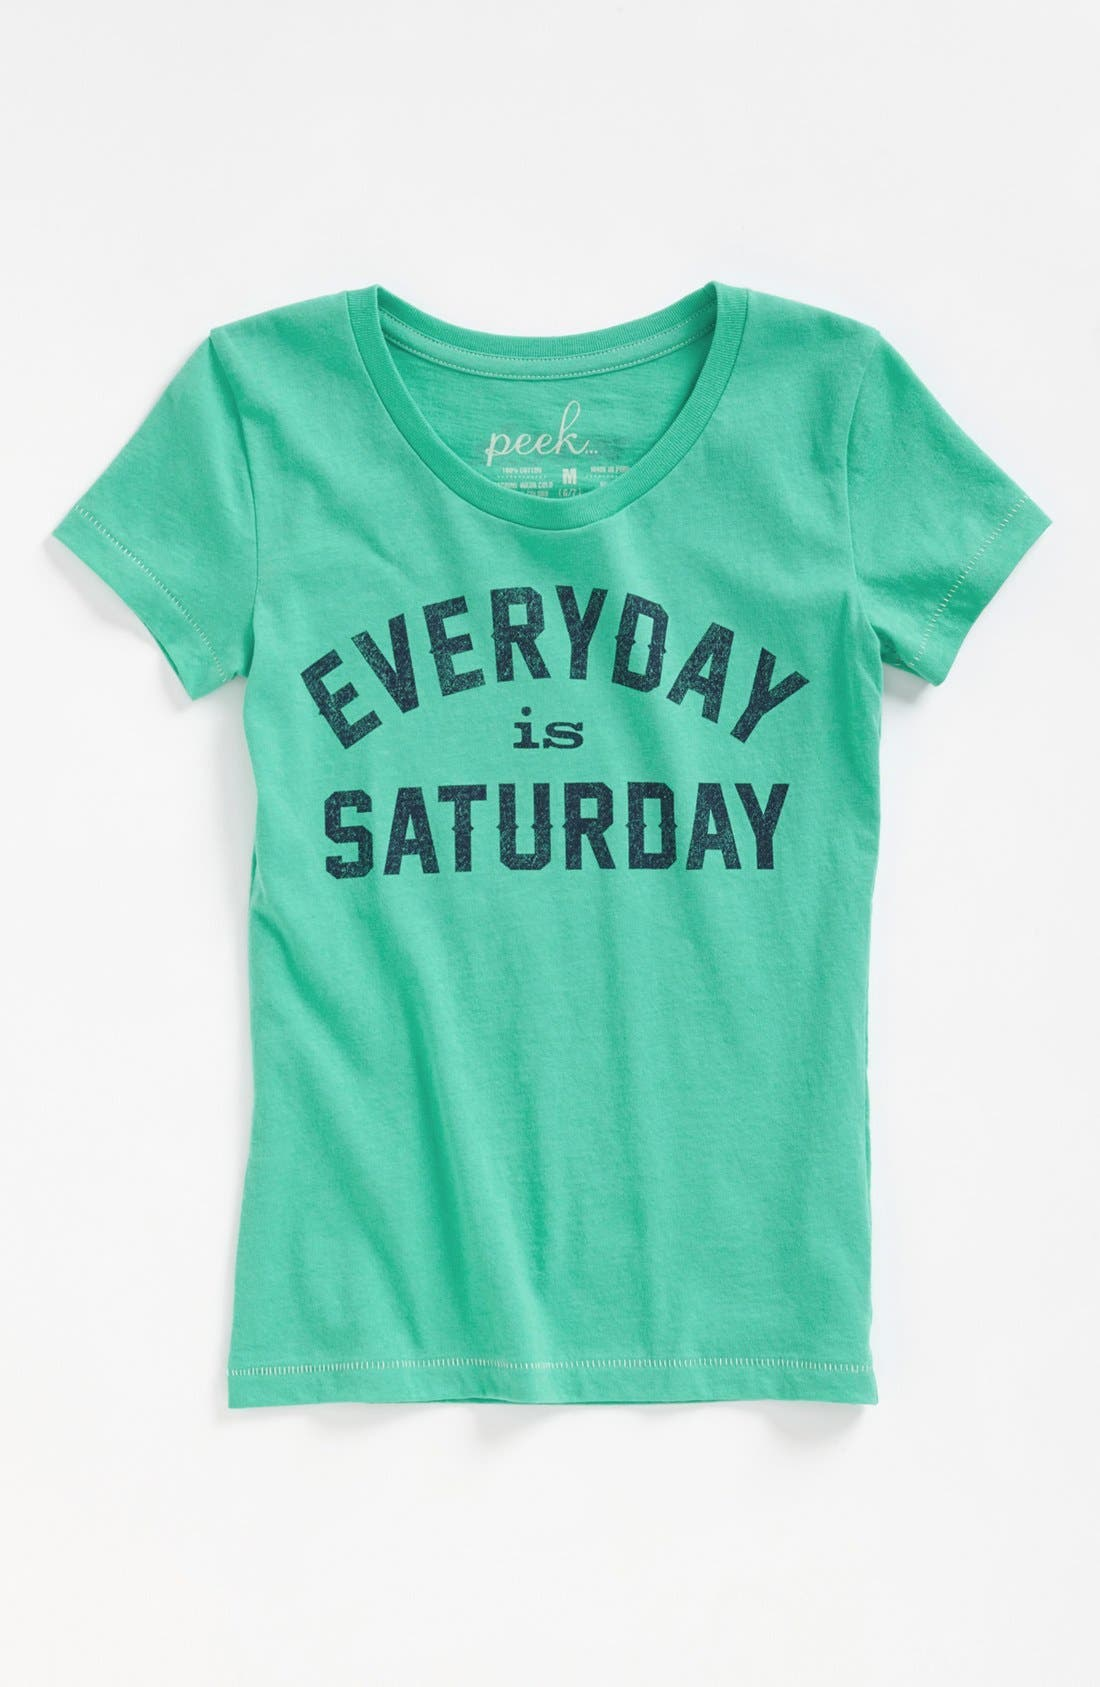 Alternate Image 1 Selected - Peek 'Everyday is Saturday' Tee (Toddler Girls, Little Girls & Big Girls)